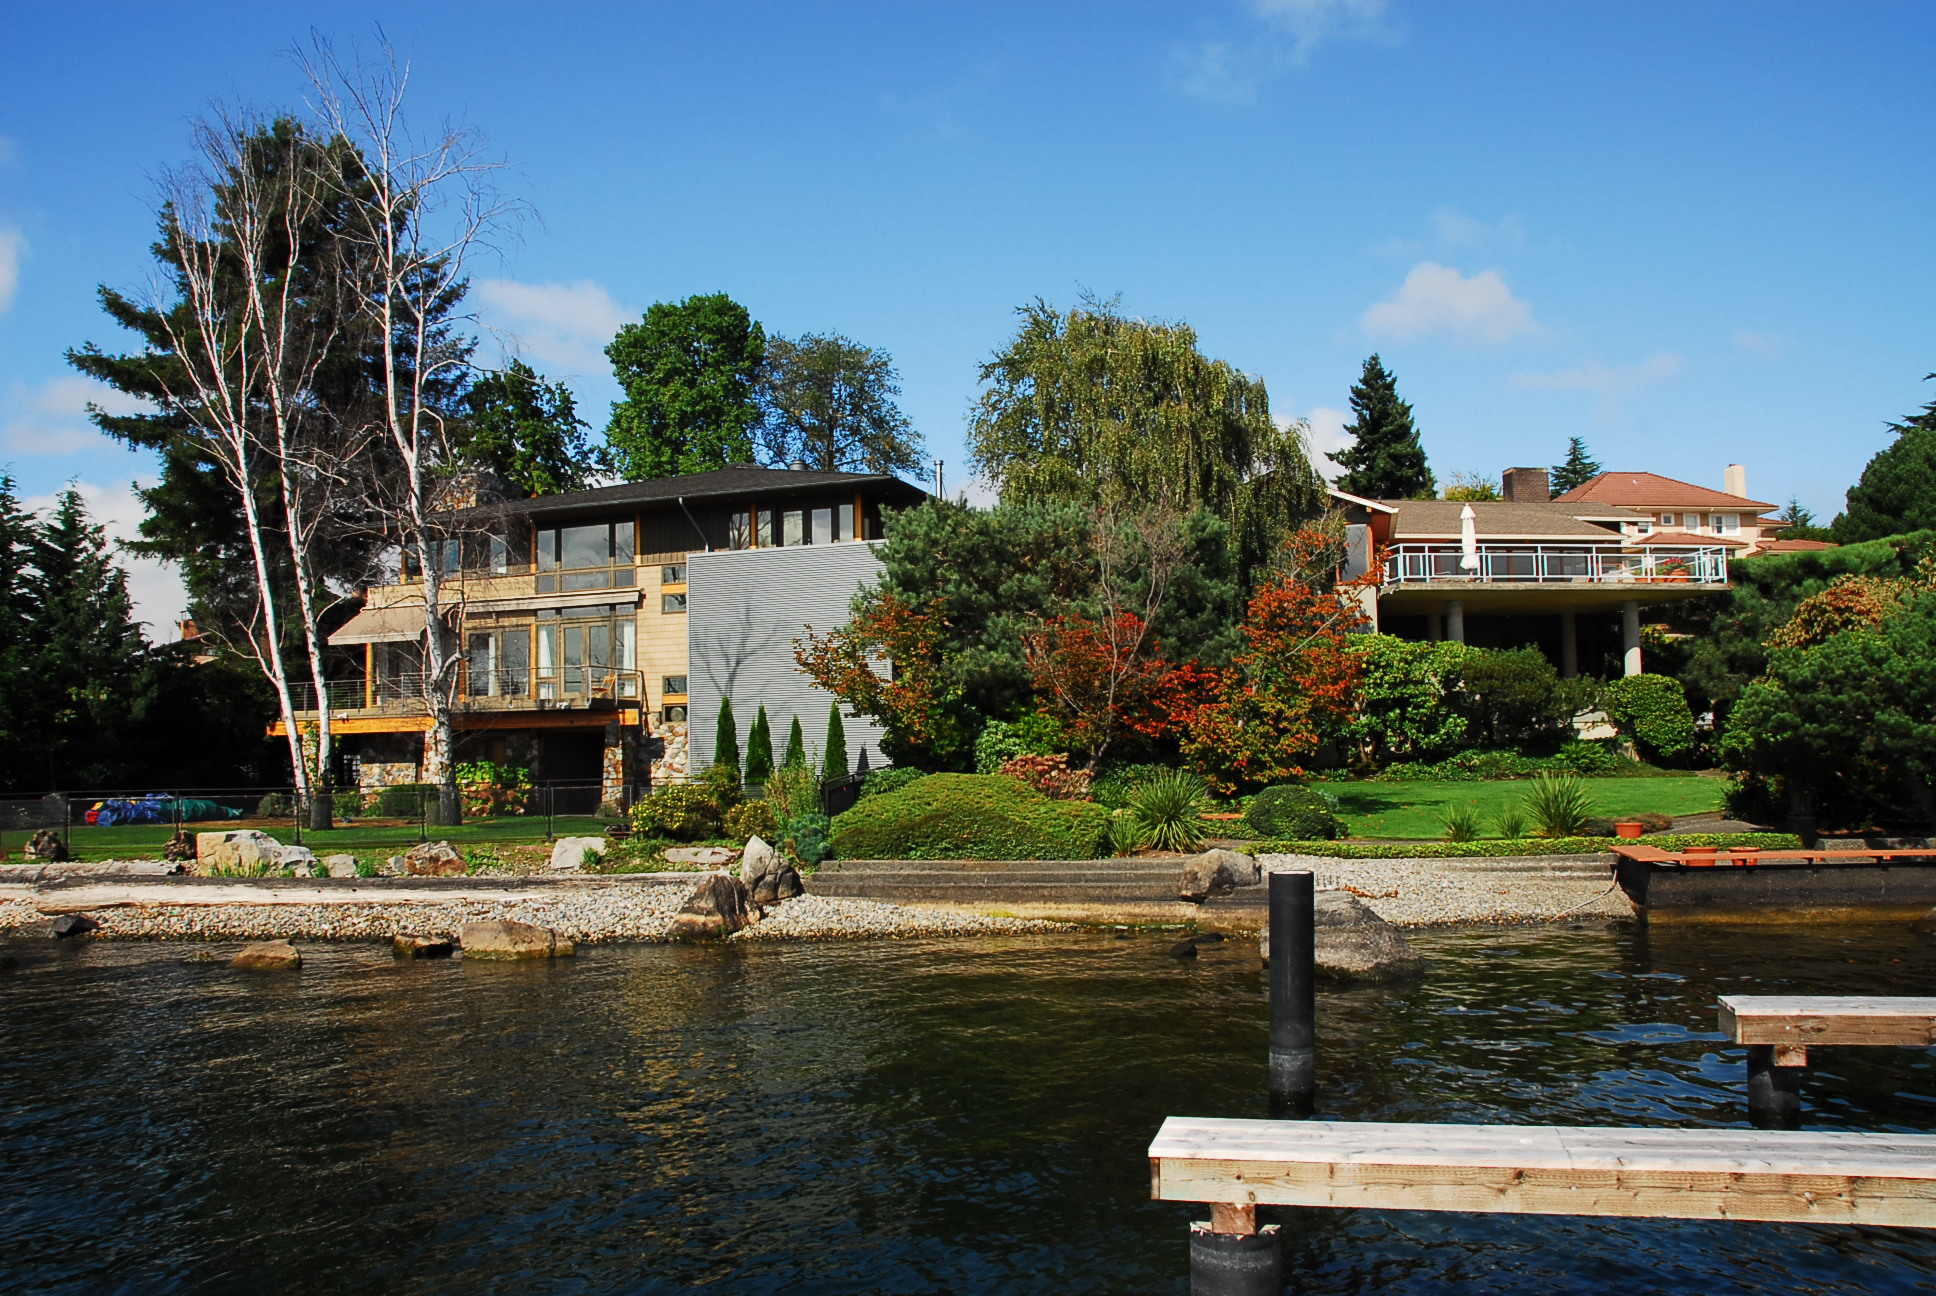 Seattle waterfront homes puget sound lake washington for New home builders in seattle area